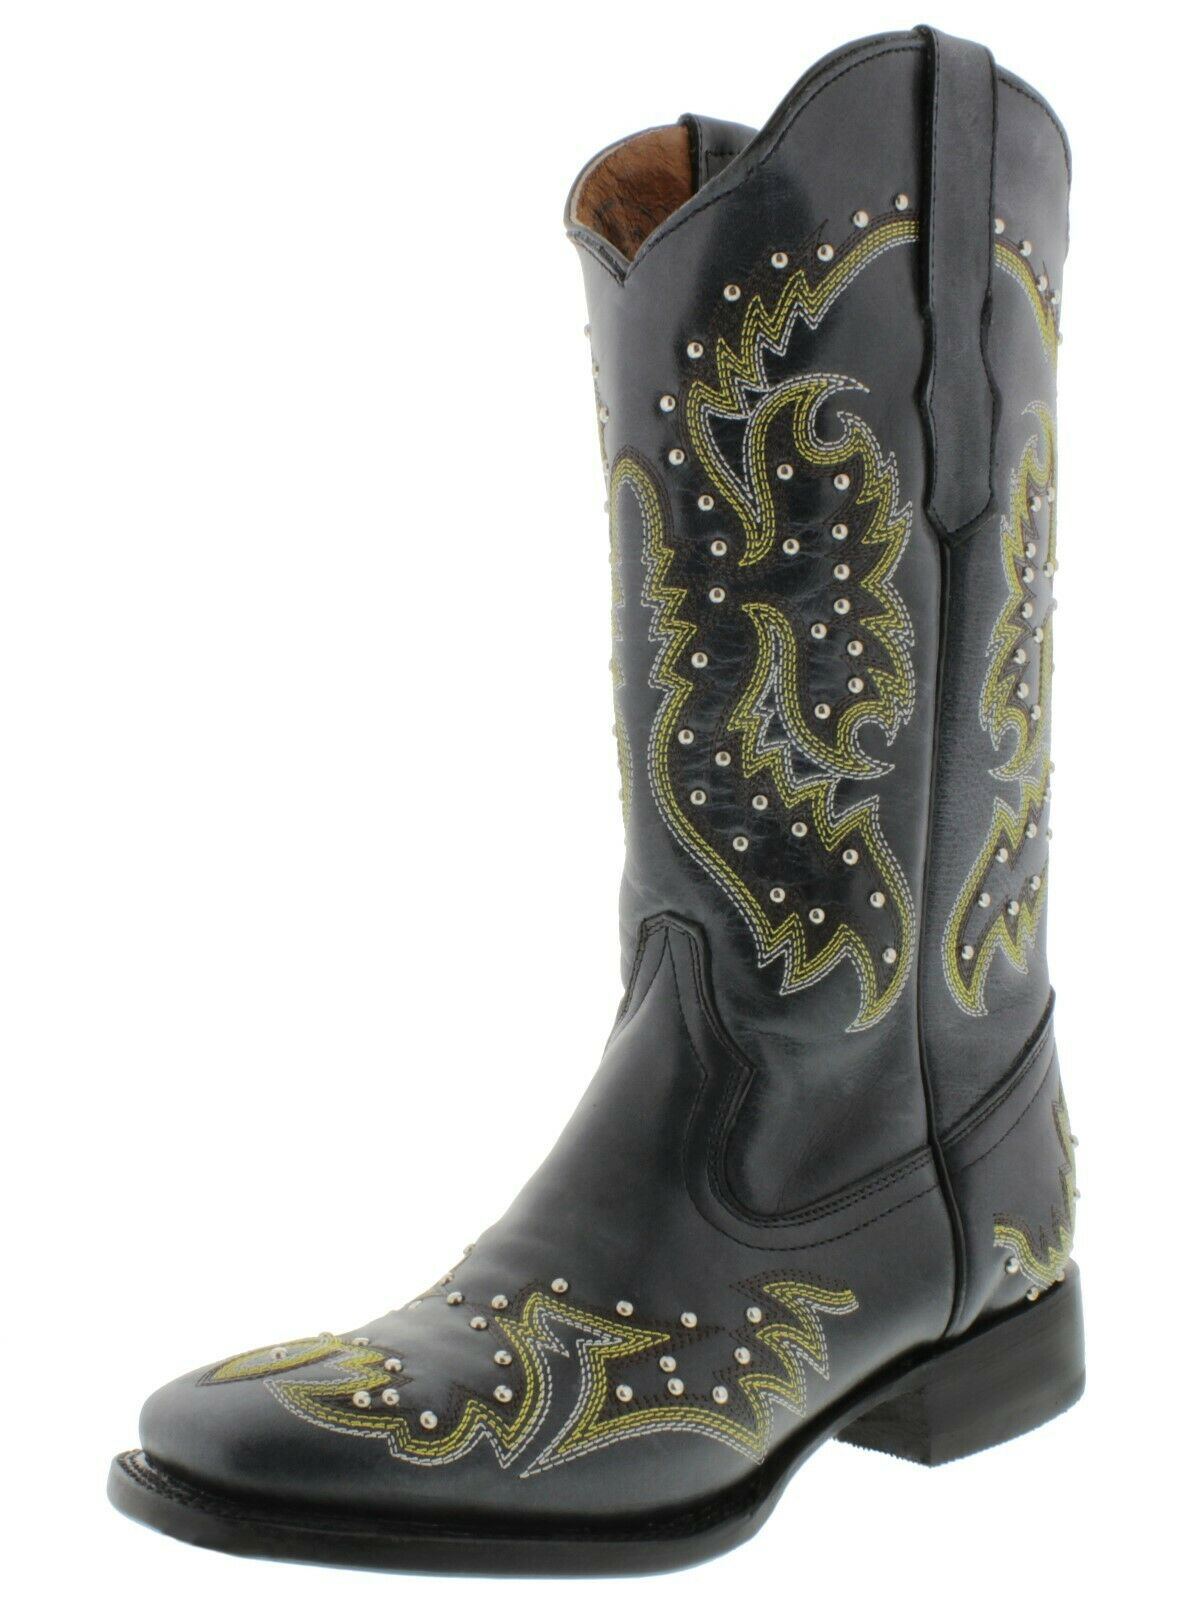 Womens Black Cowgirl Boots Silver Studded Real Embroidered Embroidered Embroidered Leather Square 81c570